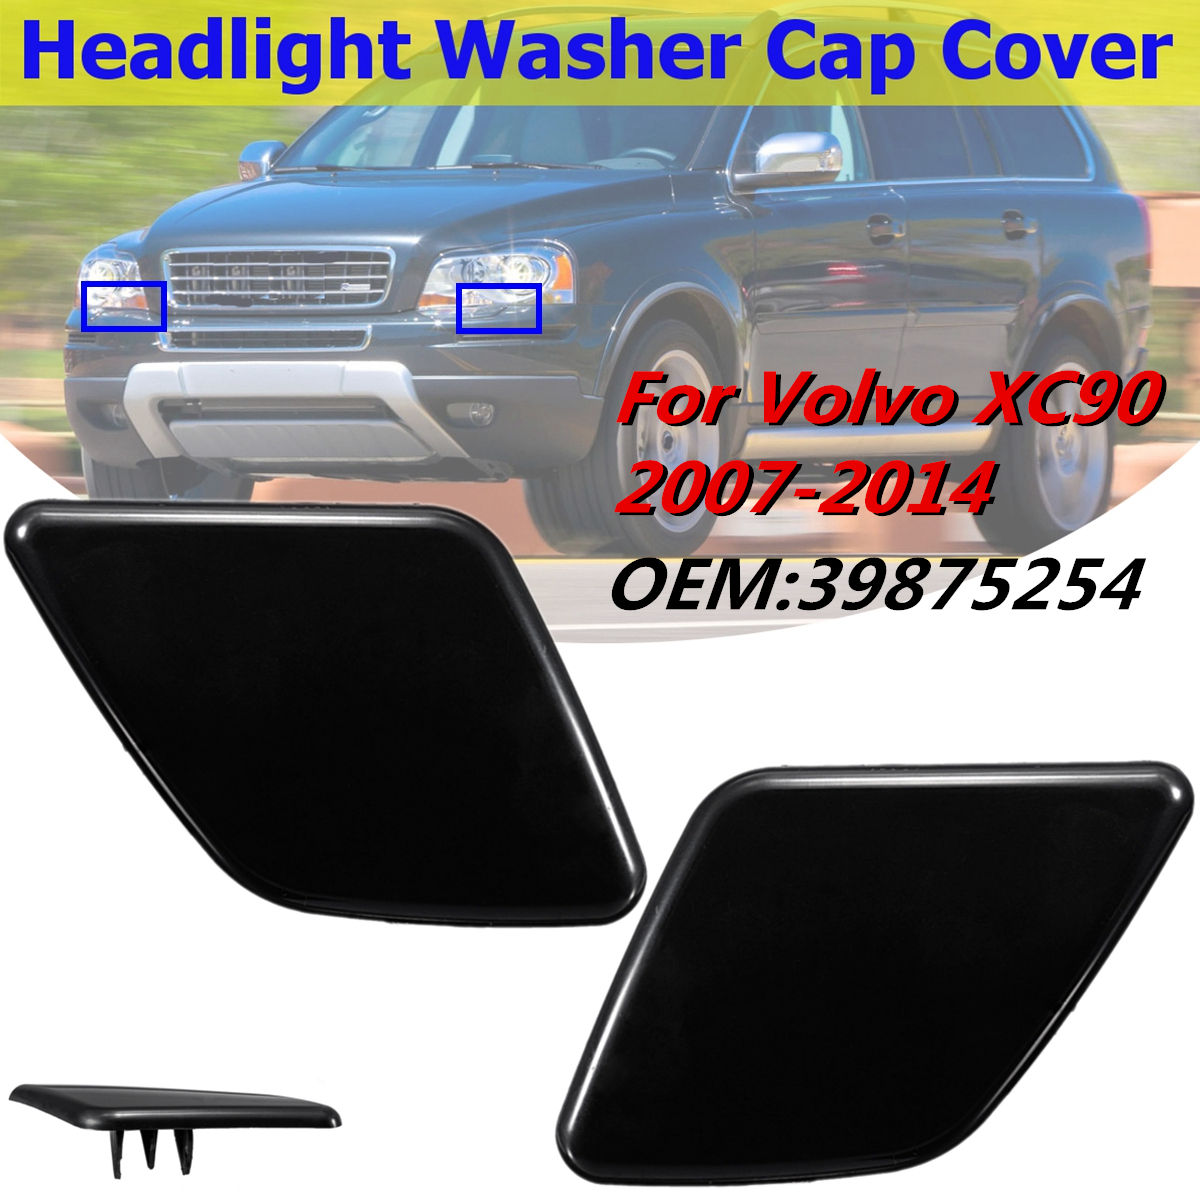 beler Left Headlight Washer Cover Cap Front Bumper Trim Fit for VOLVO XC90 2007-2014